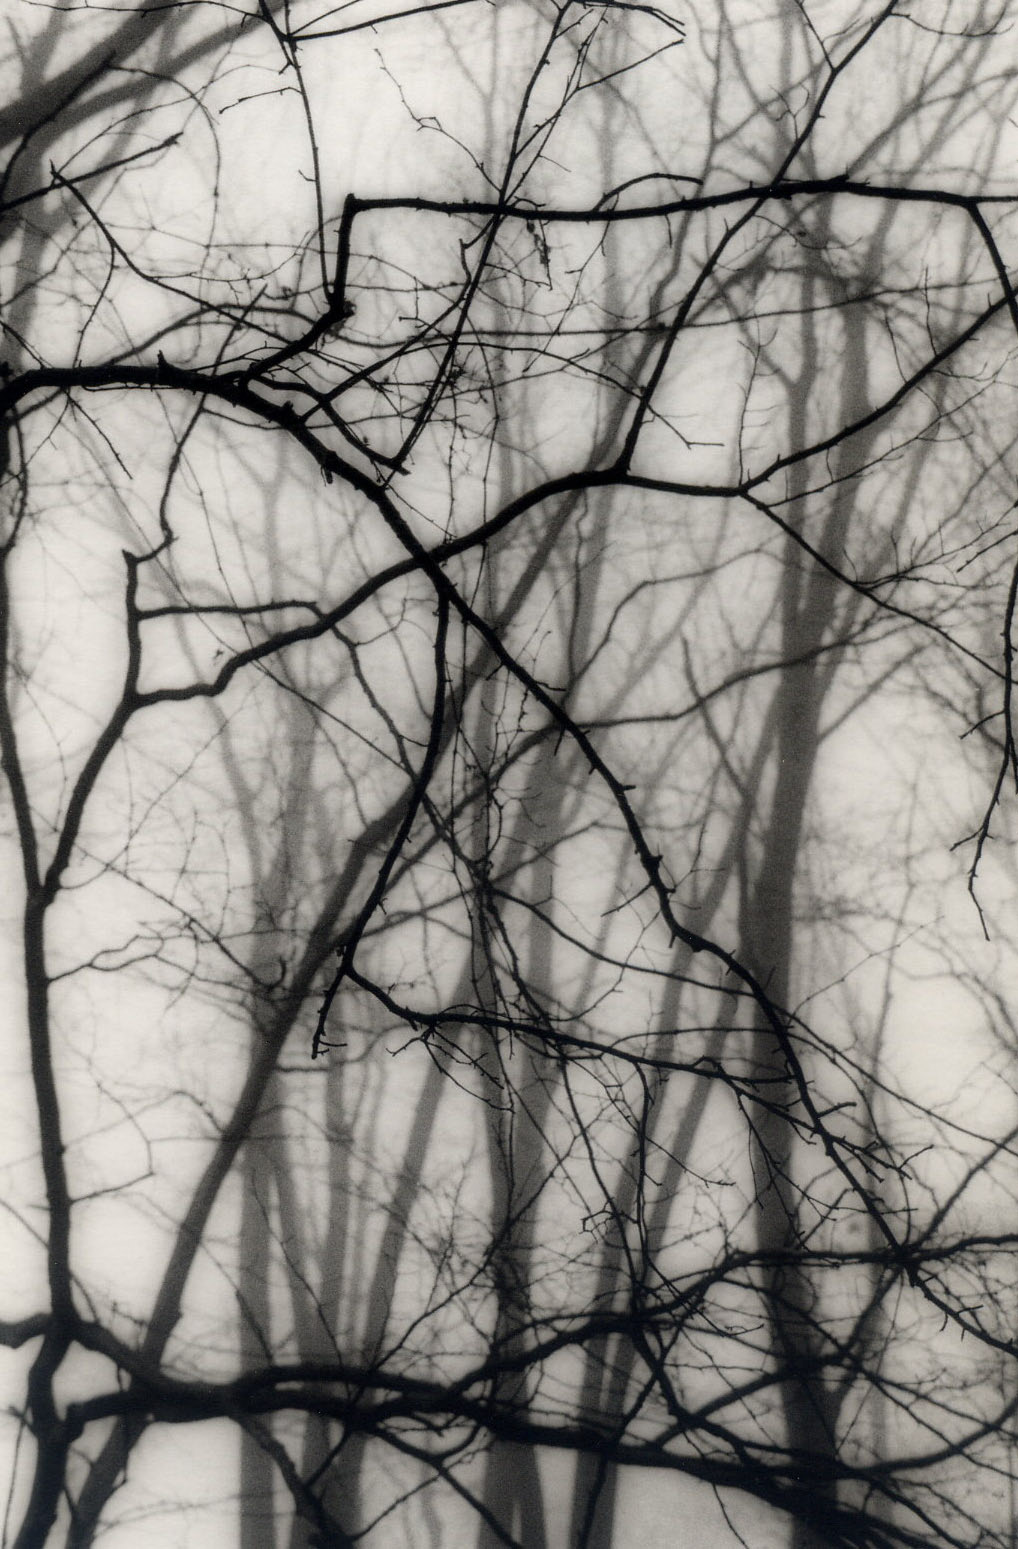 """Backyard, Somerset, NJ"", gelatin silver print by Patricia A. Bender"